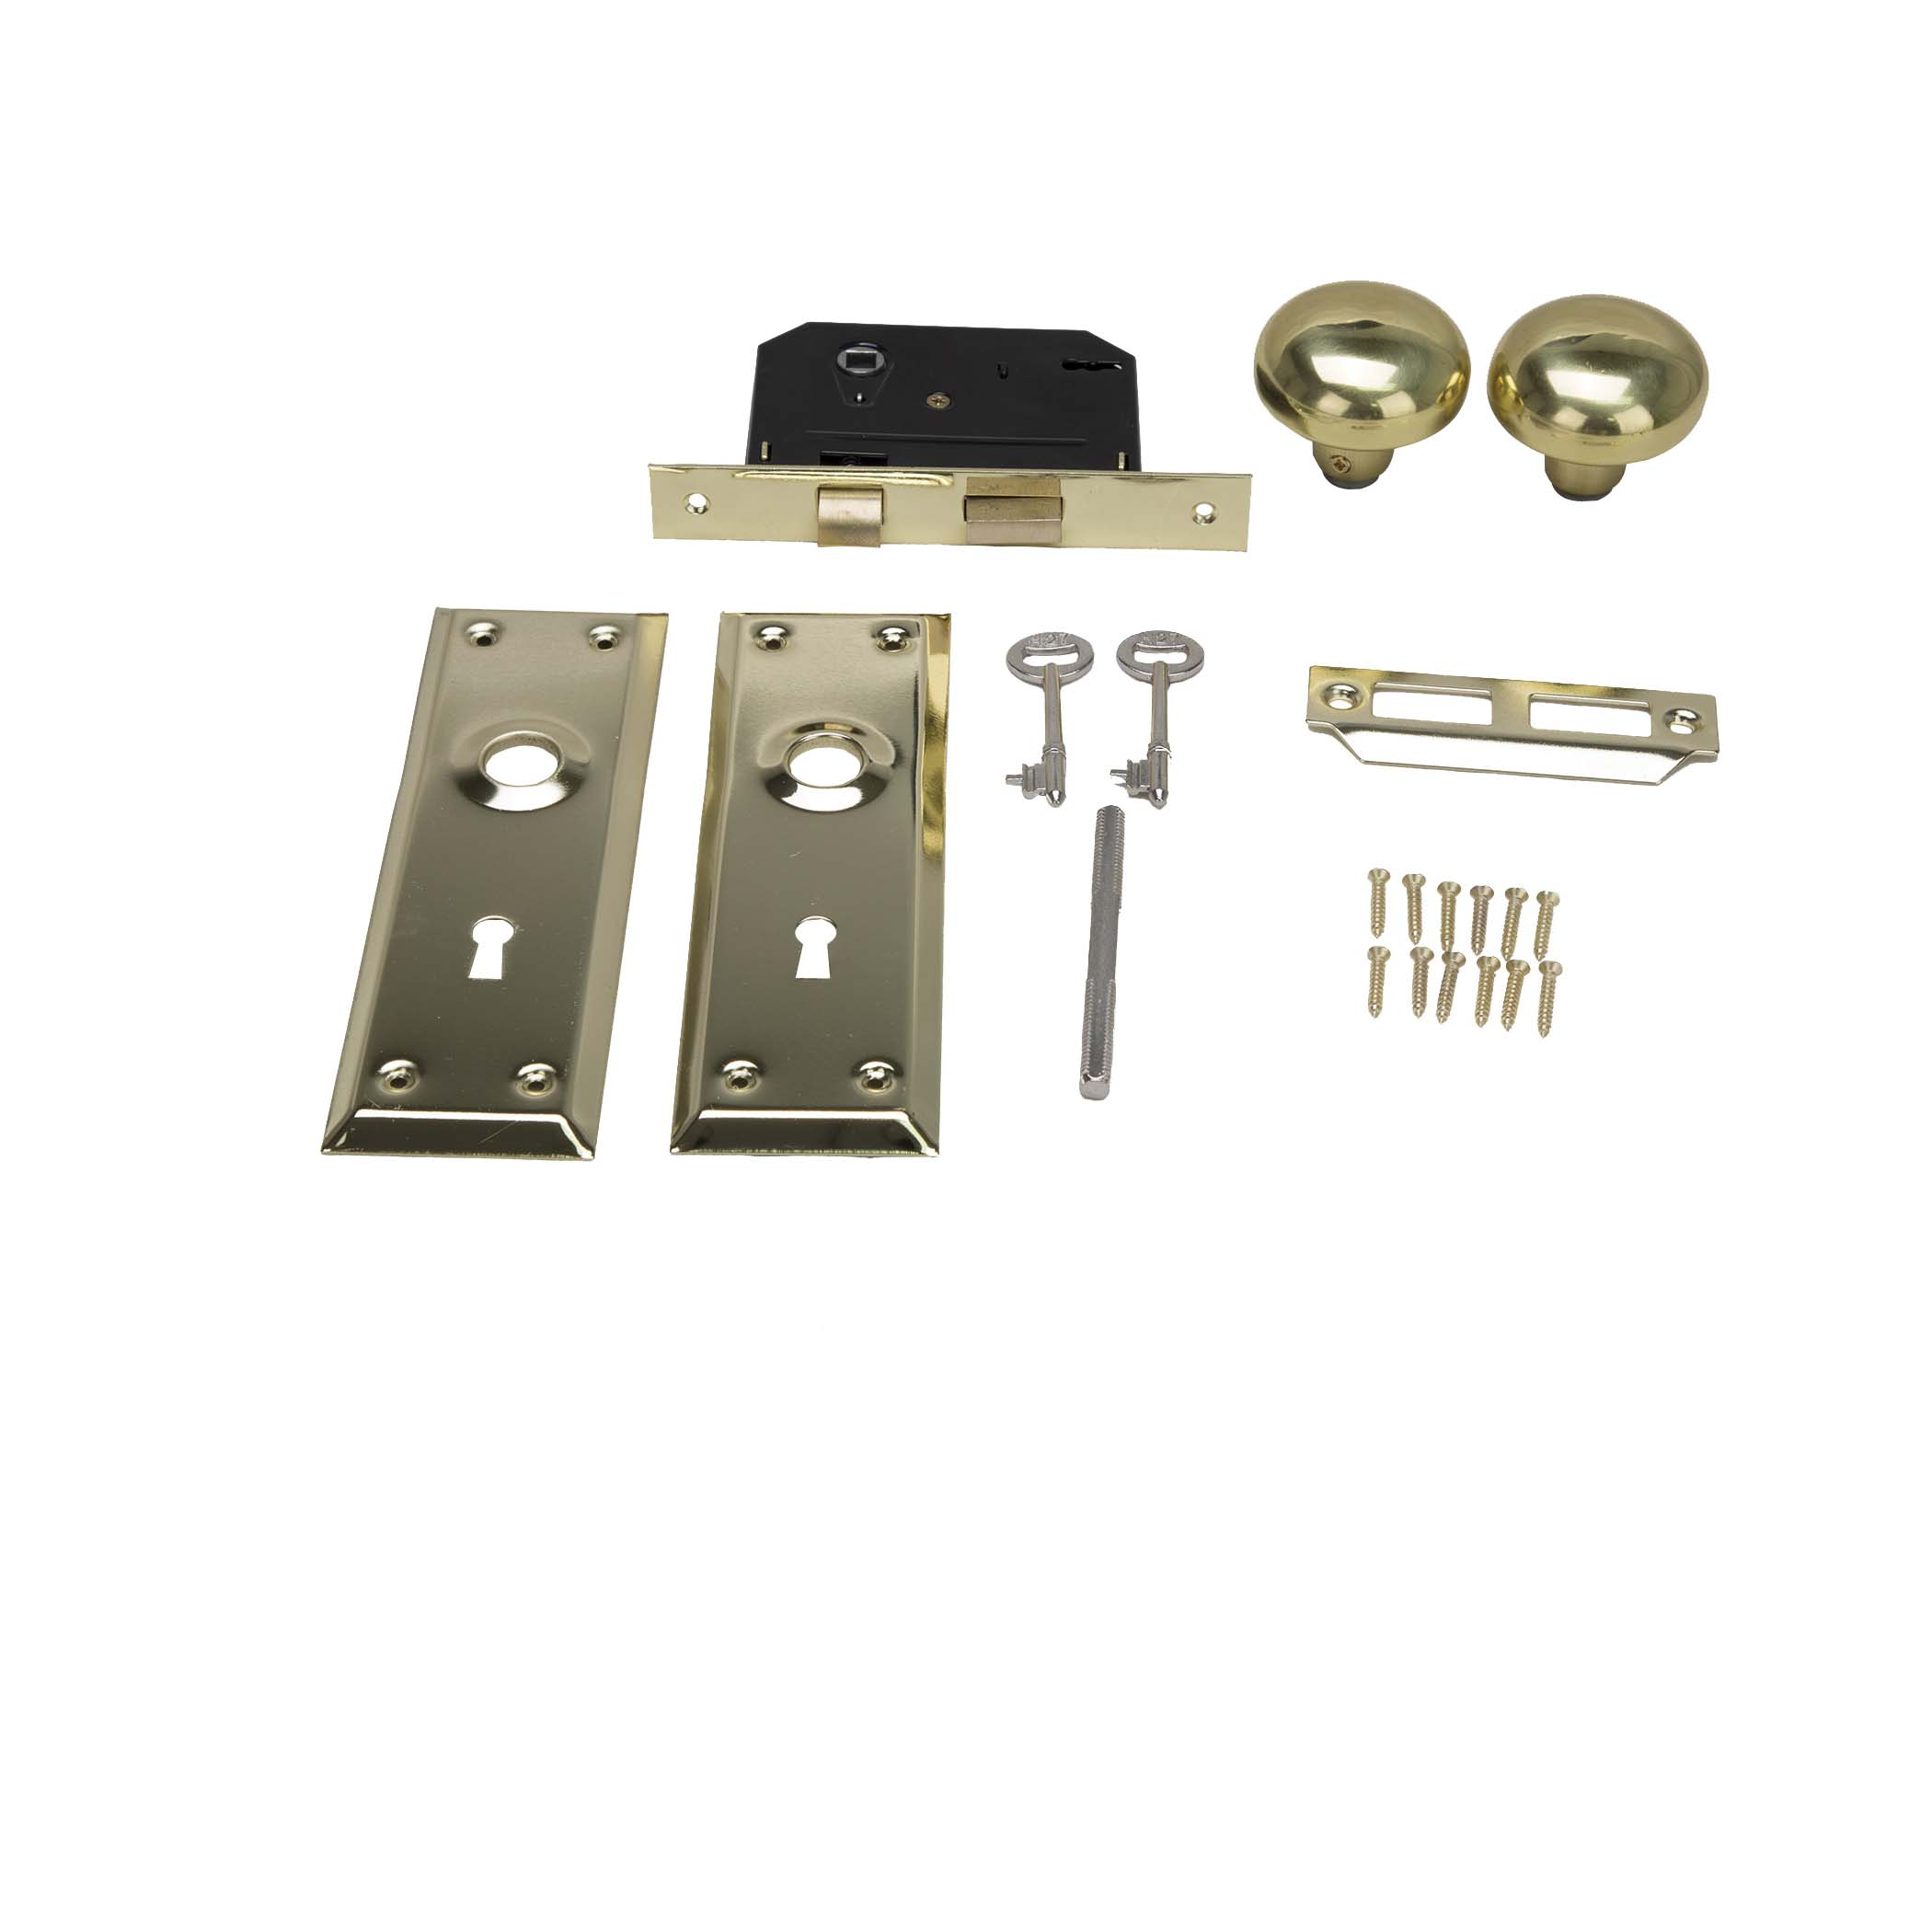 Picture of ProSource 6870372-3L Mortise Lock, Polished Brass, 2-3/8 in Backset